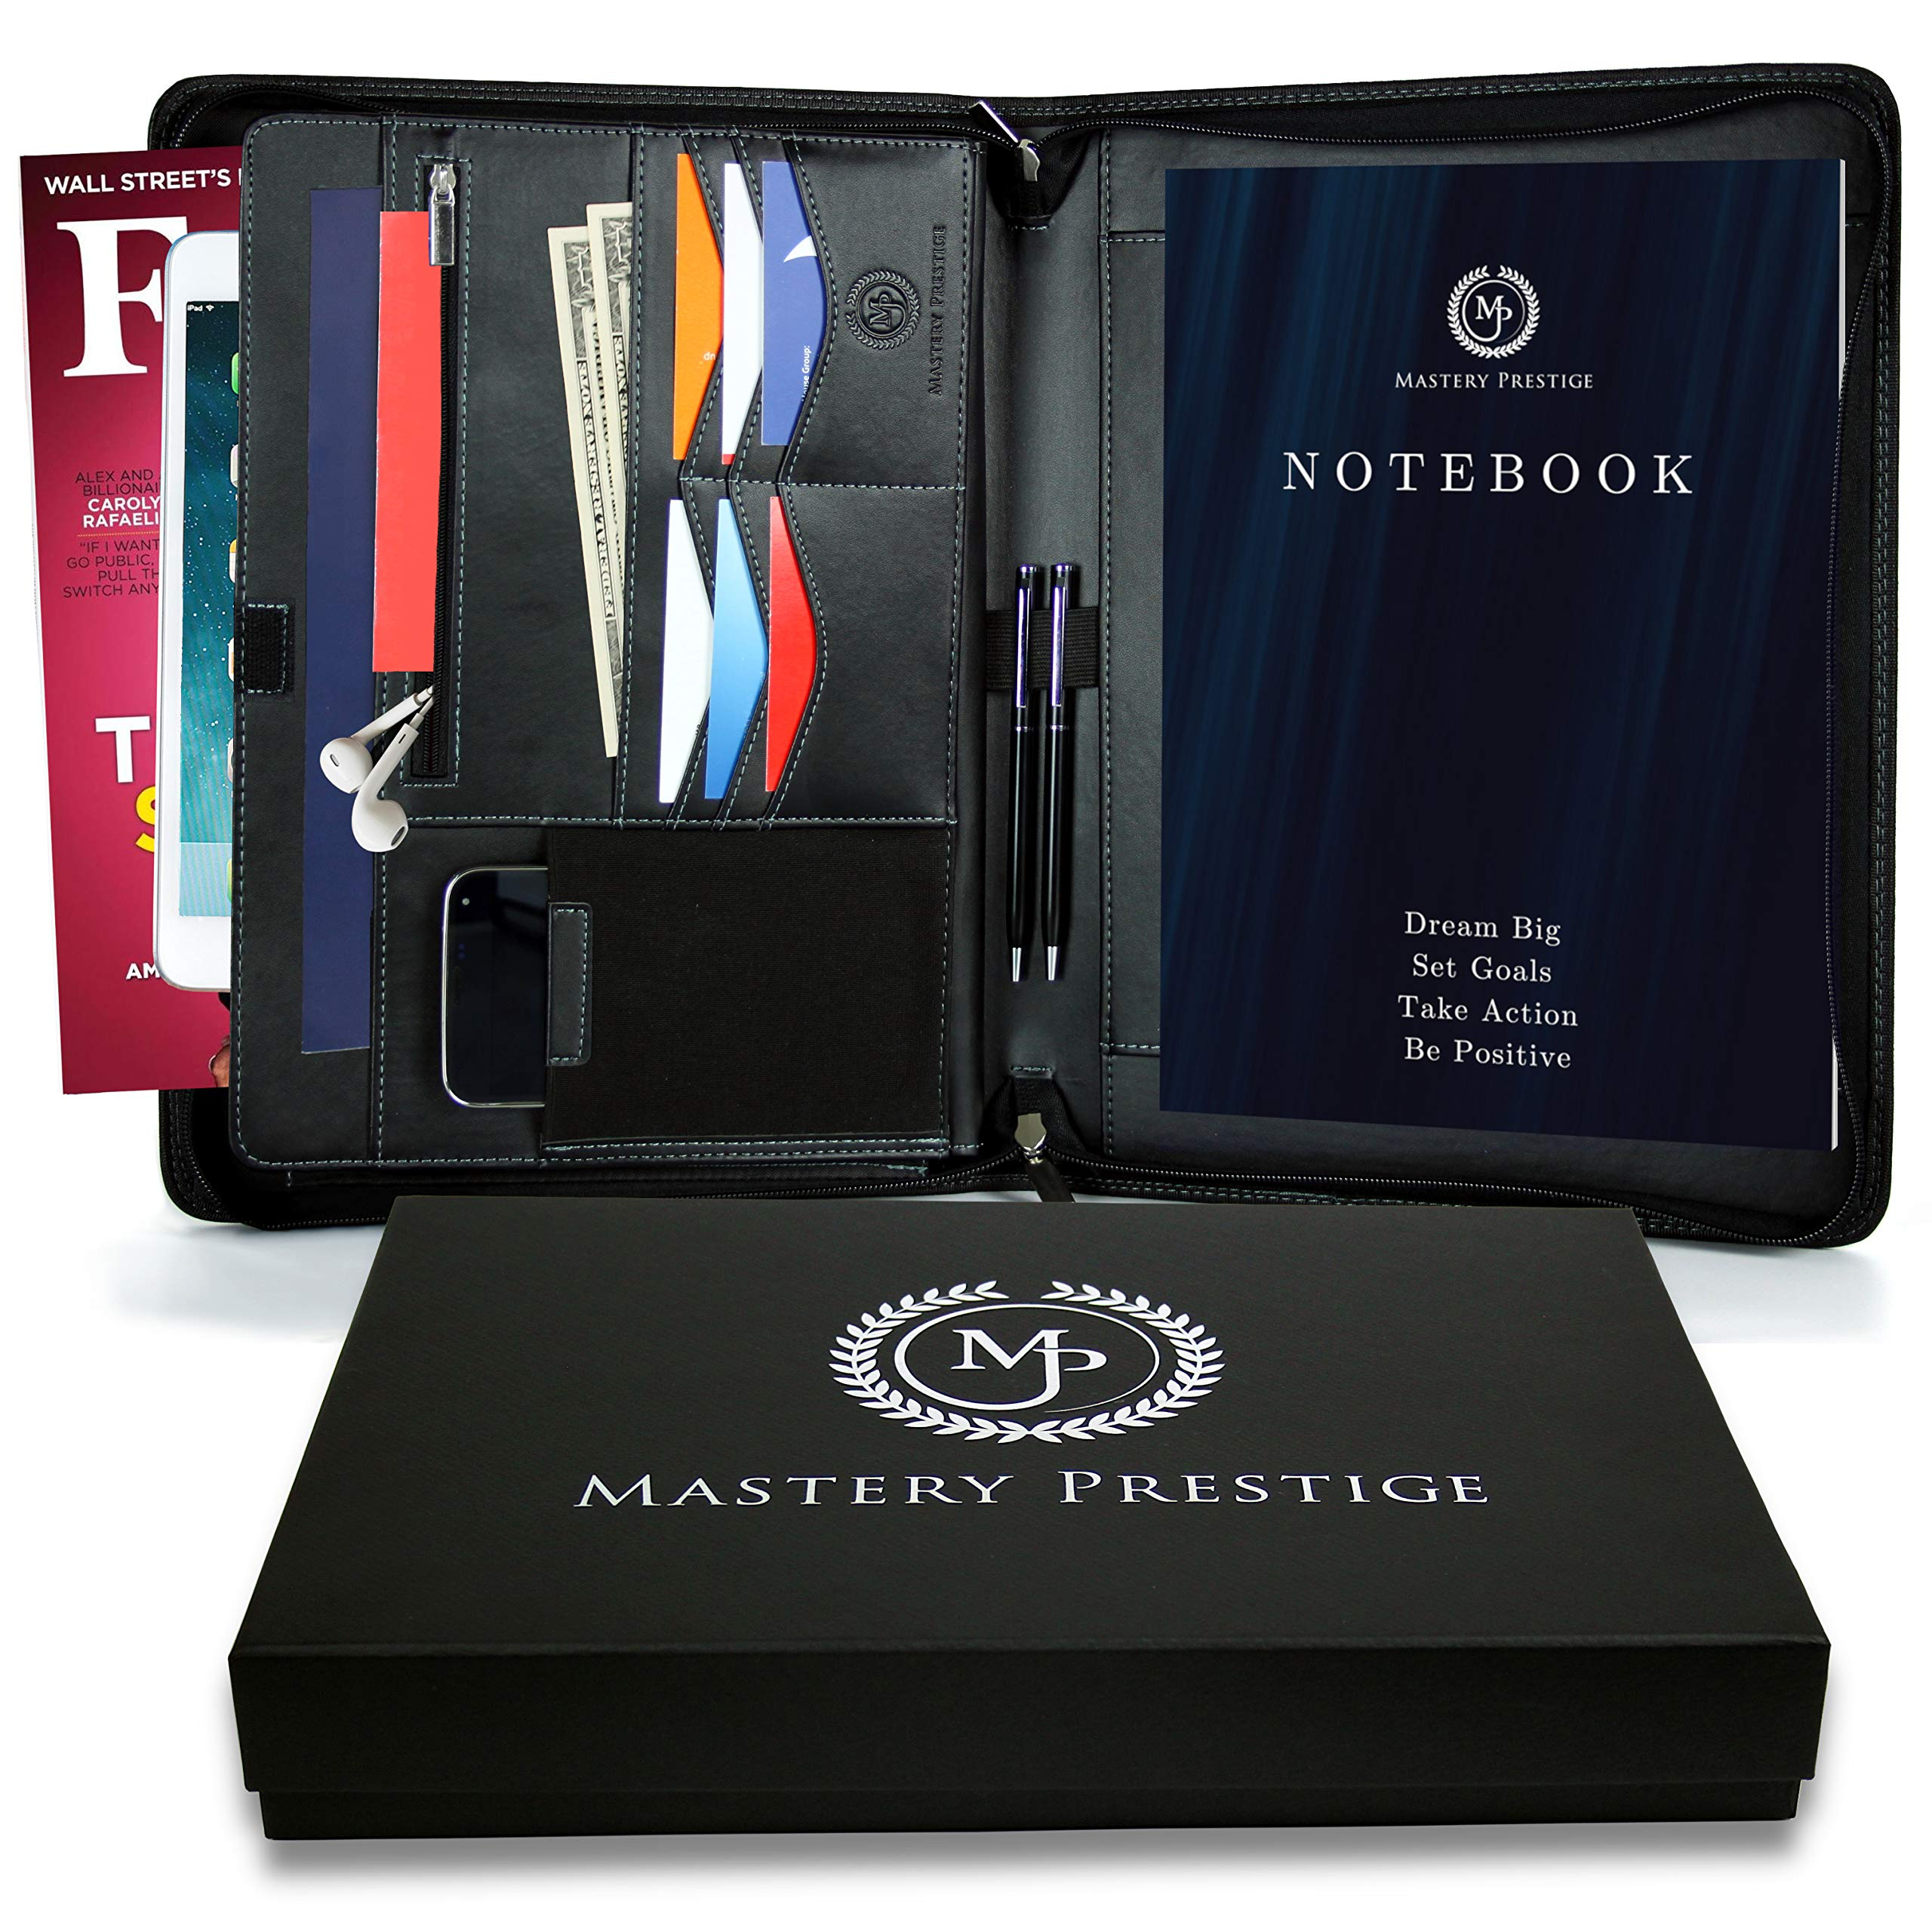 Zippered Portfolio/Padfolio Organizer by Mastery Prestige - PU Leather Case with Tablet Sleeve, A4 Notebook, Phone & Business Cards Holders - Professional Interview Document Binder, File Folder